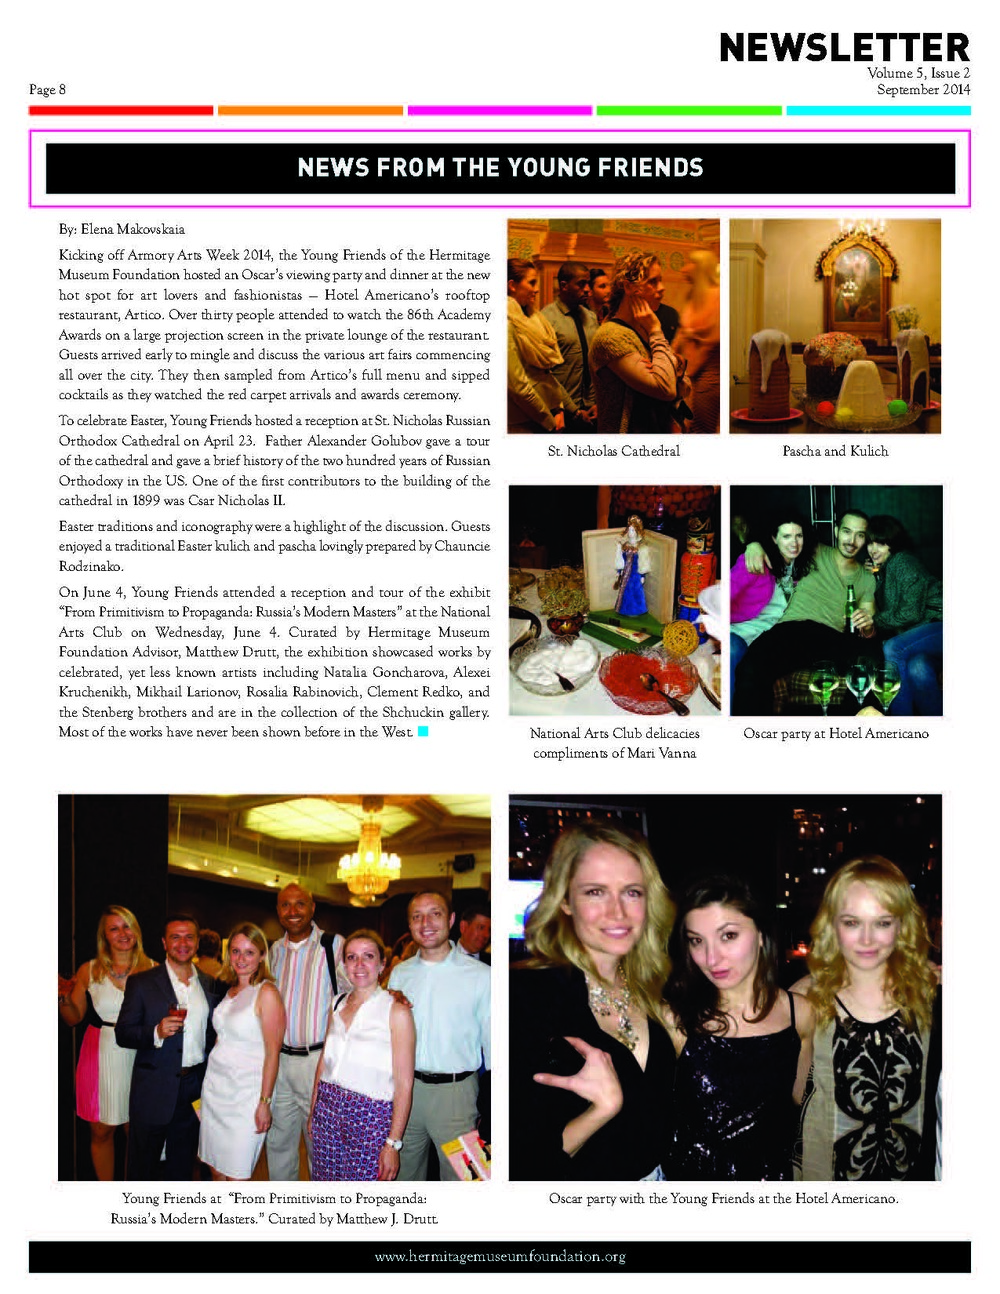 Hermitage_Museum_Foundation_Newsletter_FINAL_Sept._2014_Page_7.jpg